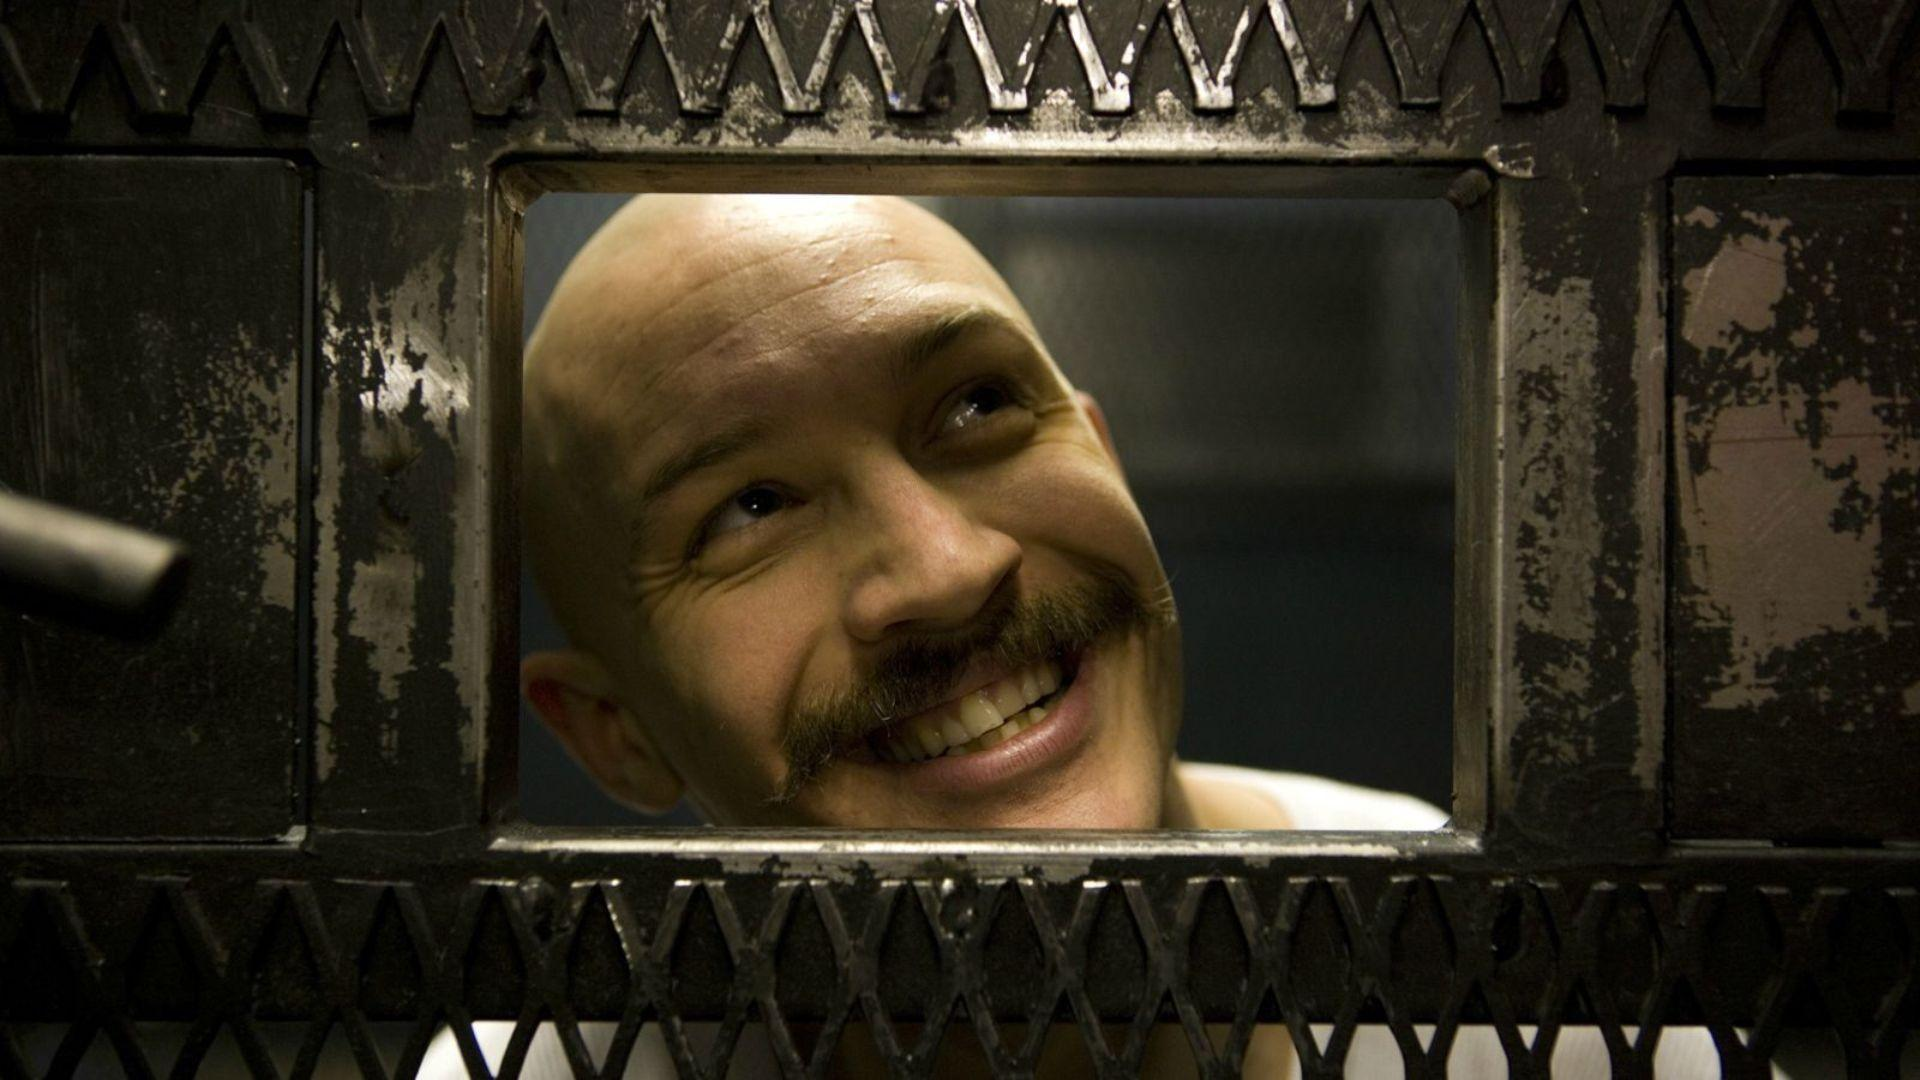 bronson tom hardy Wallpapers HD / Desktop and Mobile Backgrounds